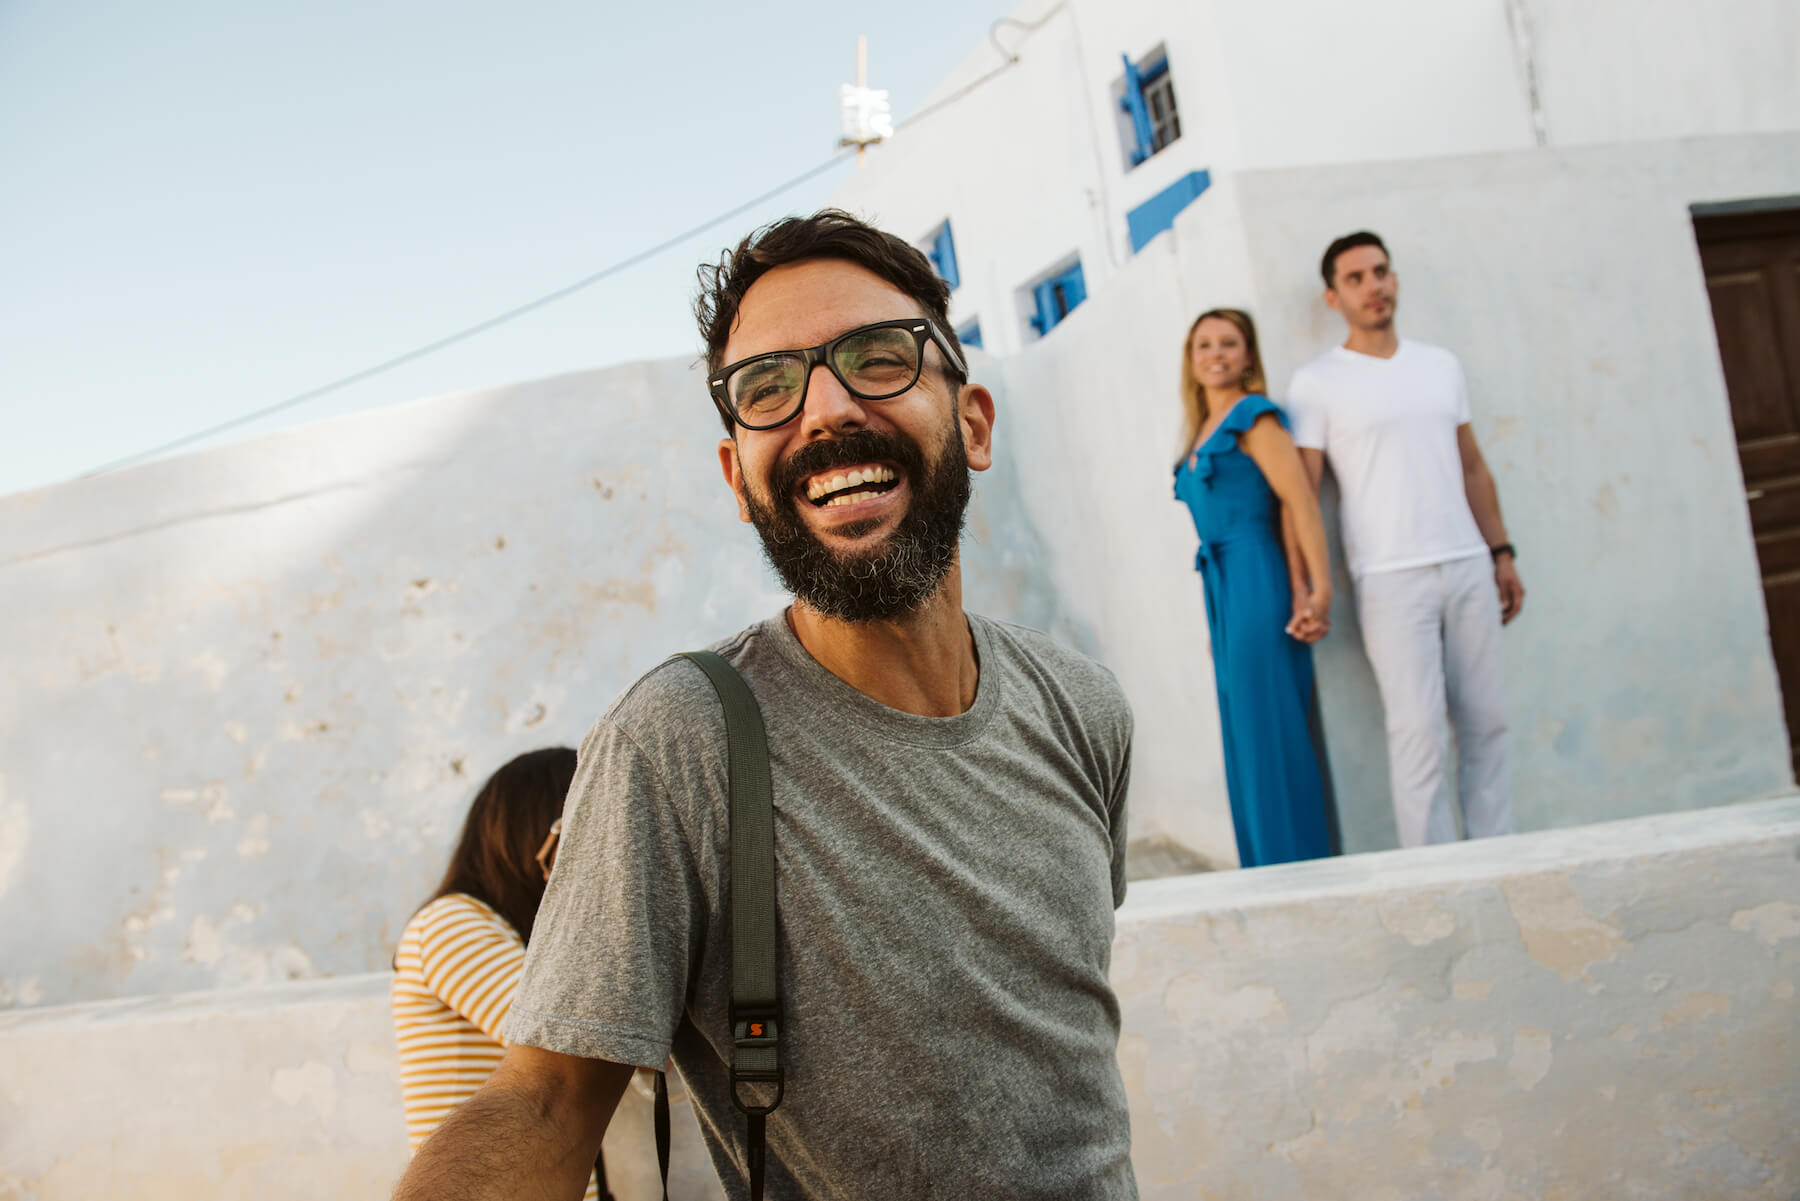 A man smiling in Santorini, Greece